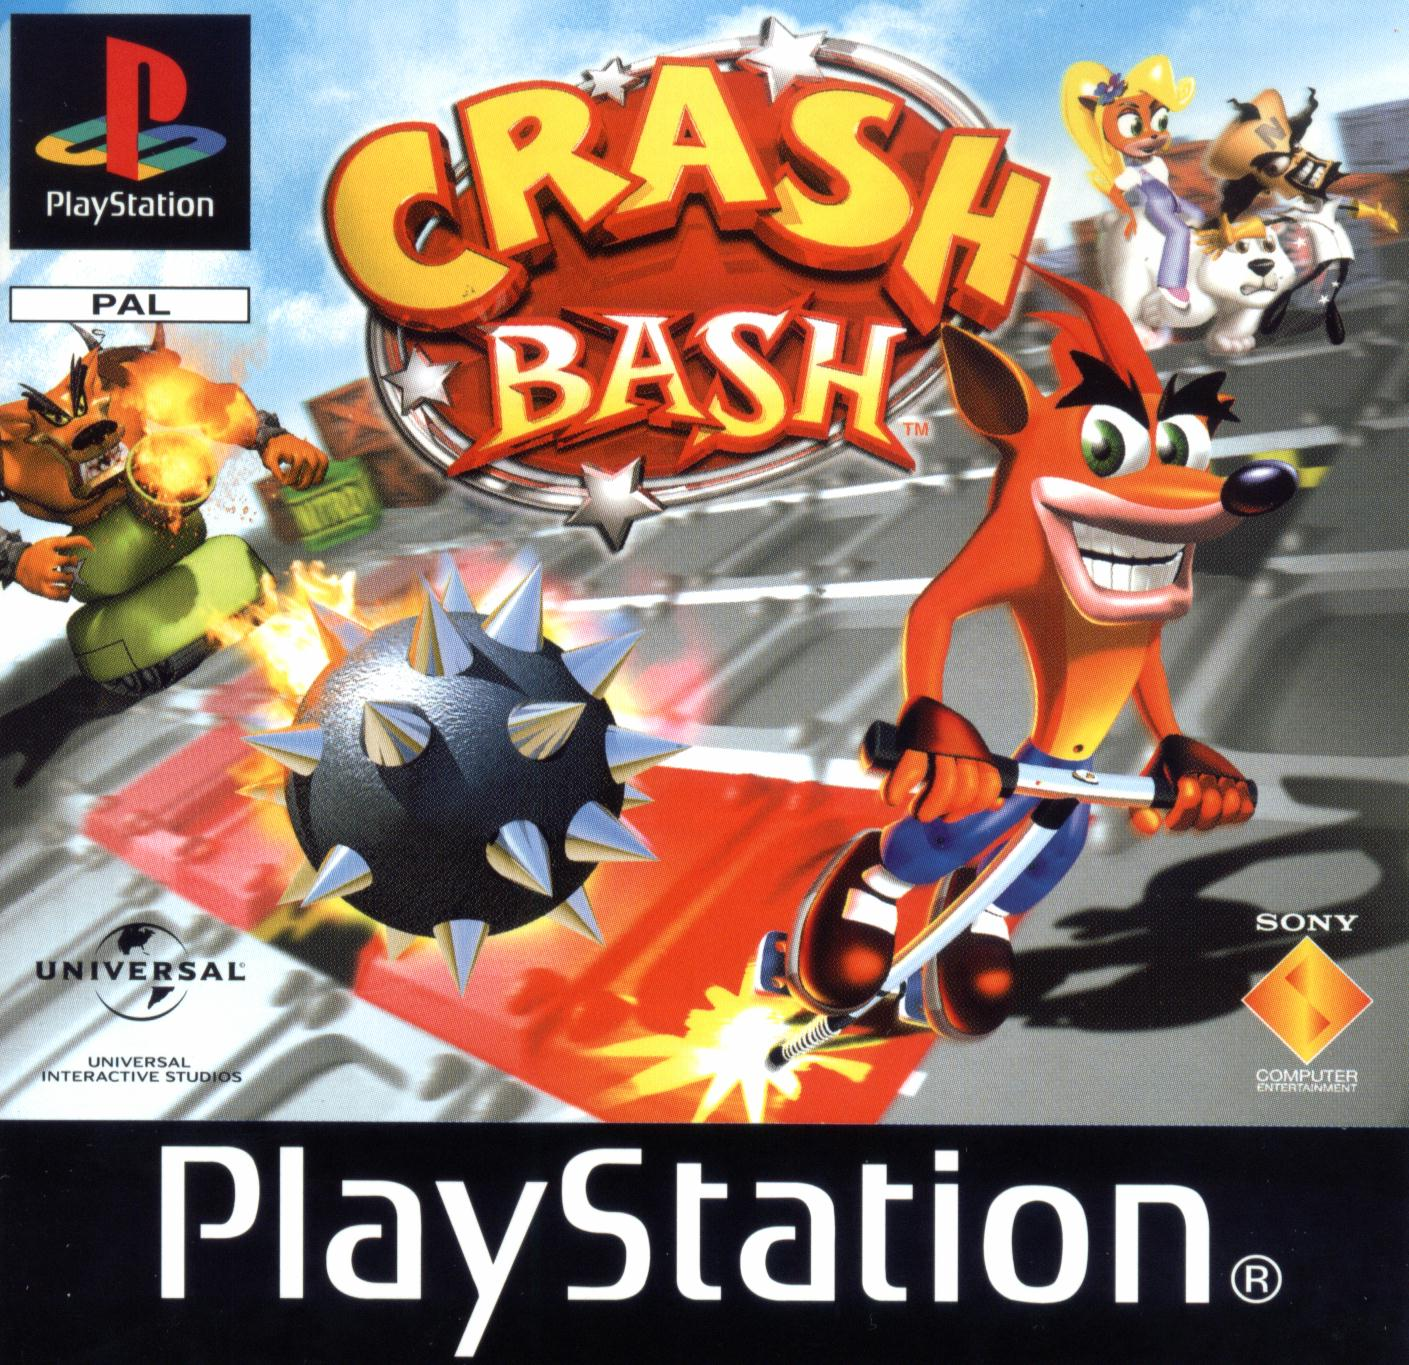 [Pedido] Estado/Memory Card Crash Bash